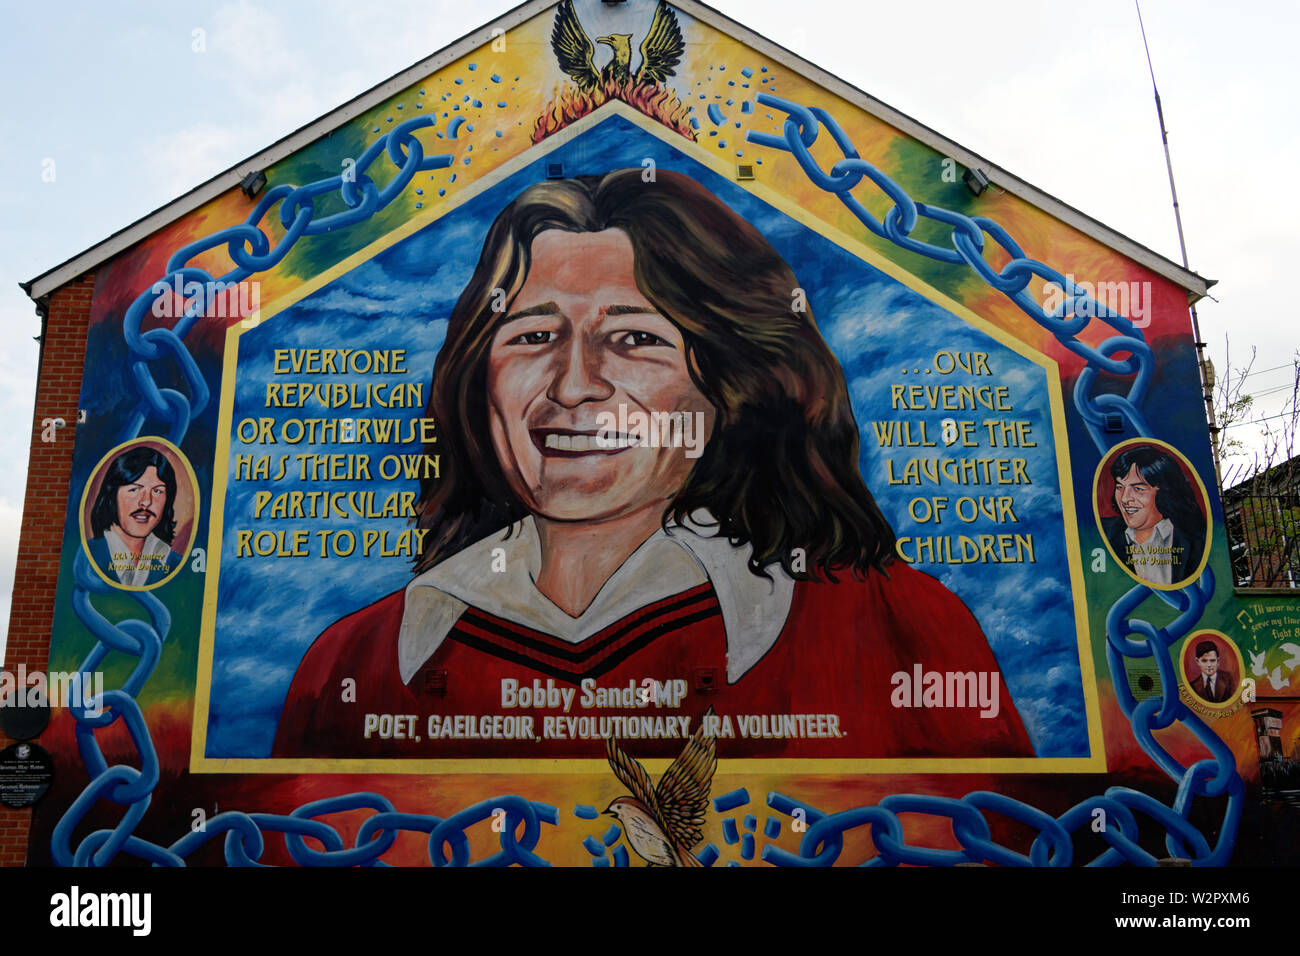 Bobby Sands mural on the Falls Road,Belfast city, Northern Ireland. - Stock Image